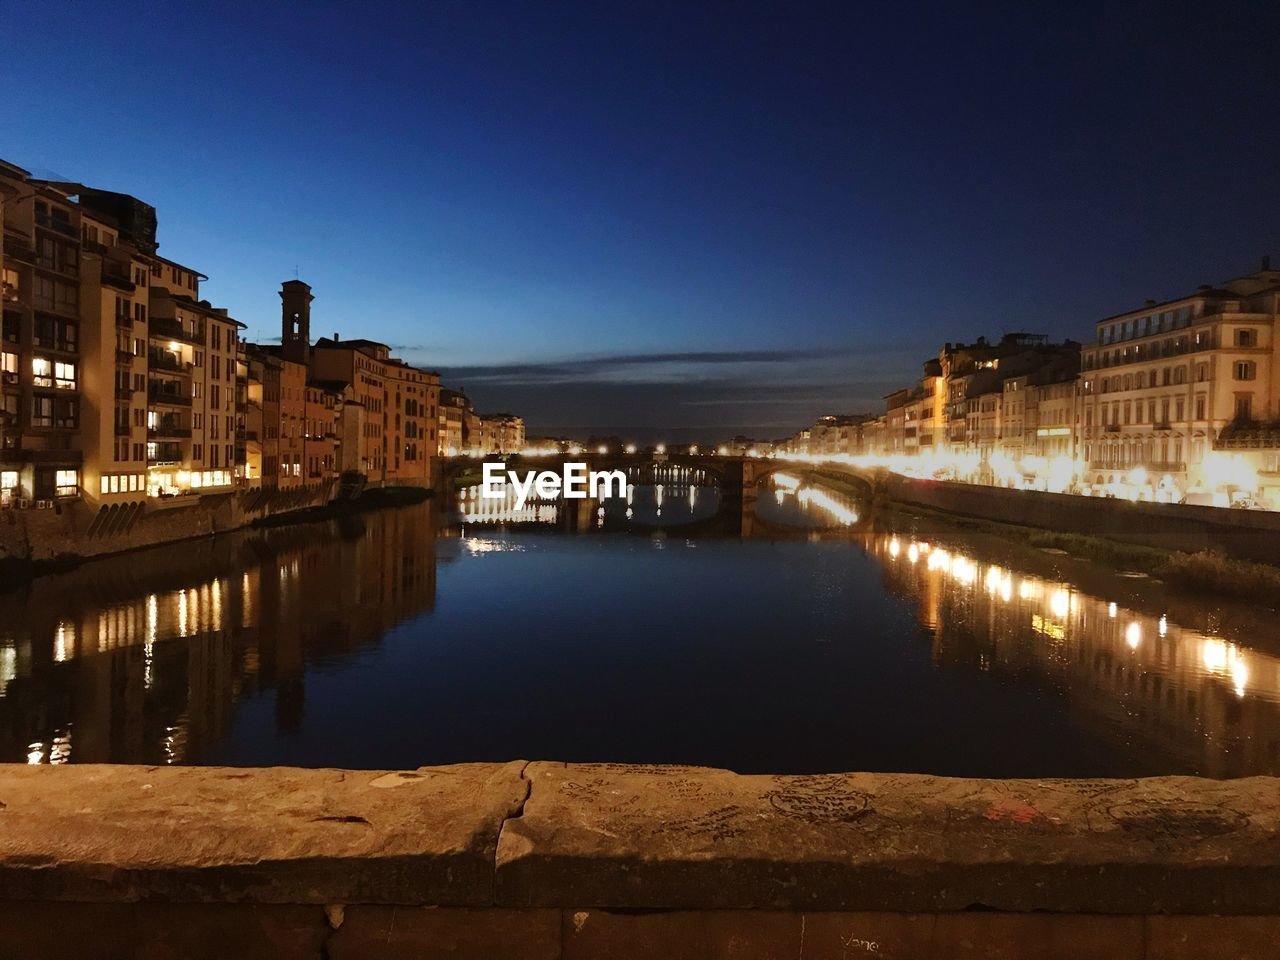 architecture, built structure, illuminated, building exterior, reflection, night, water, outdoors, sky, travel destinations, river, no people, city, blue, chain bridge